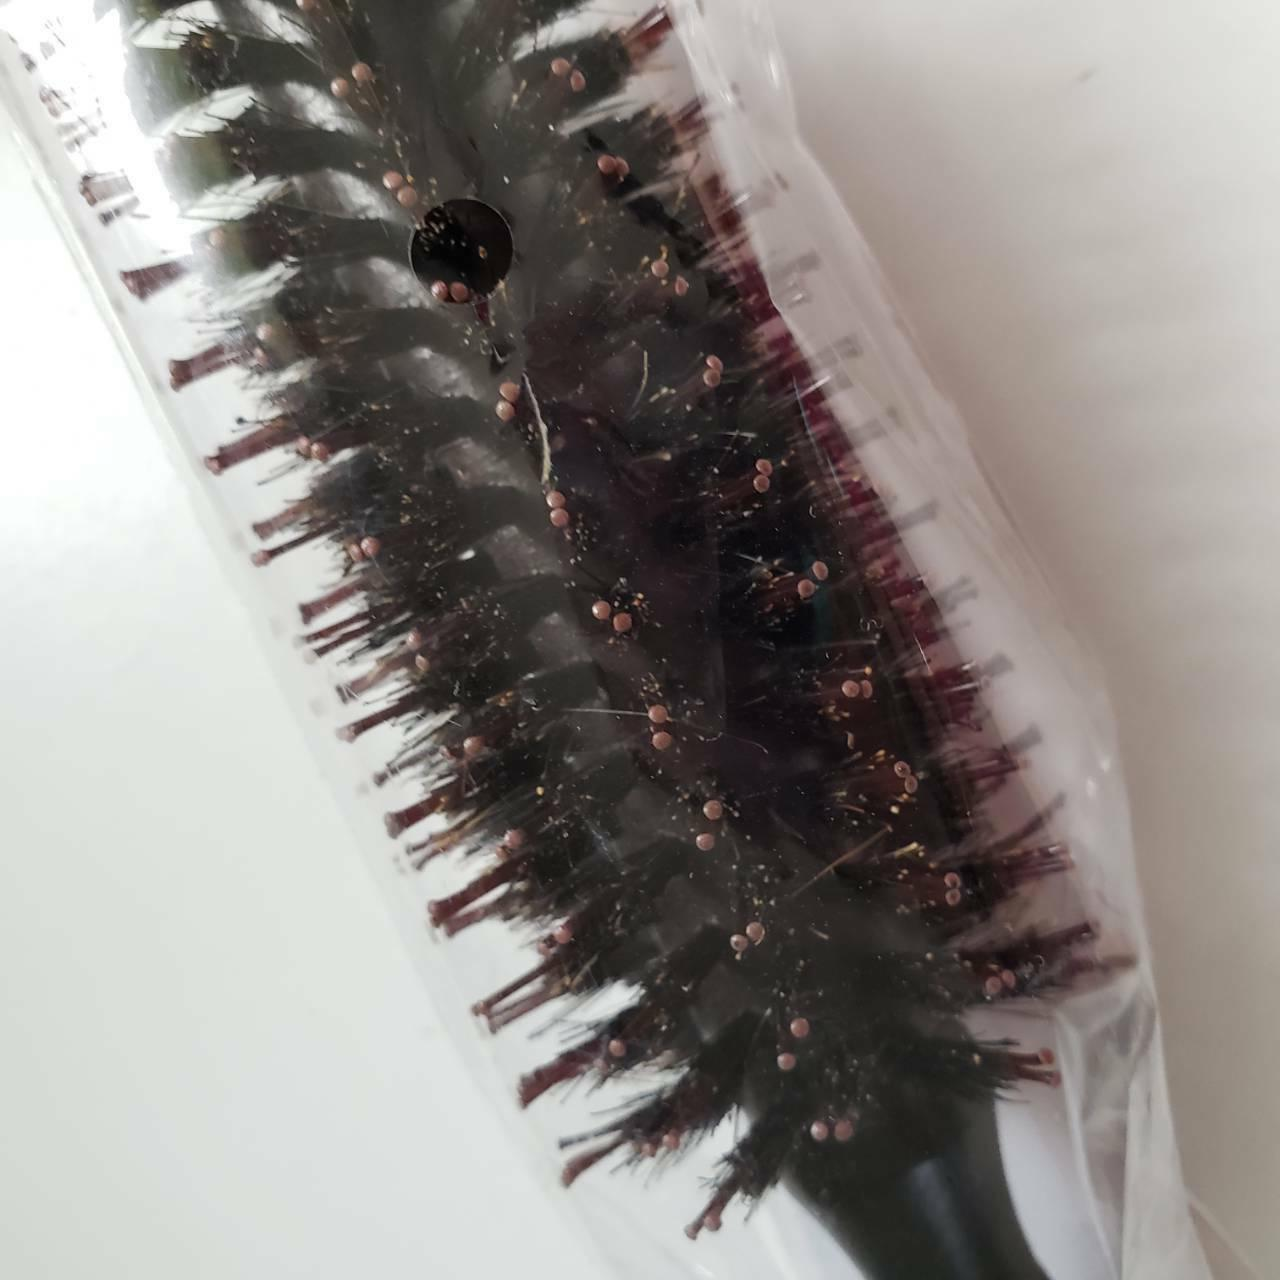 Boar Hair Brush - Inch - Blow Dryer Curlin